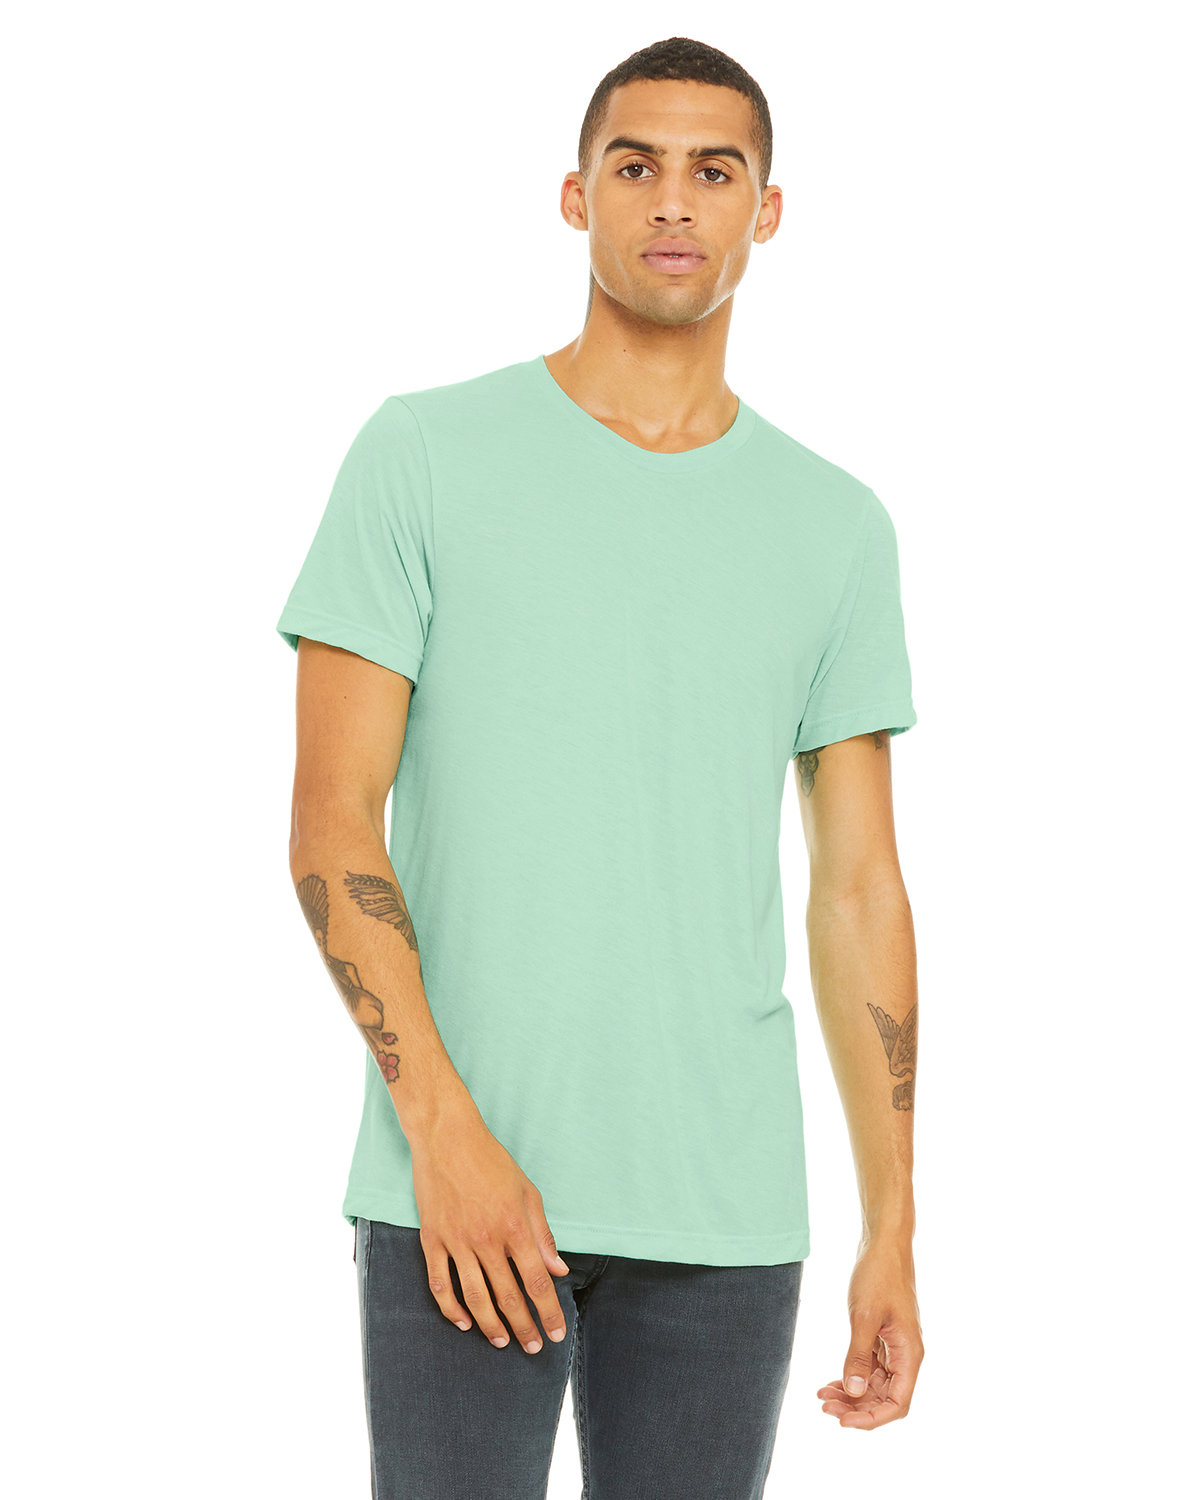 Bella + Canvas Unisex Heather CVC T-Shirt HEATHER MINT